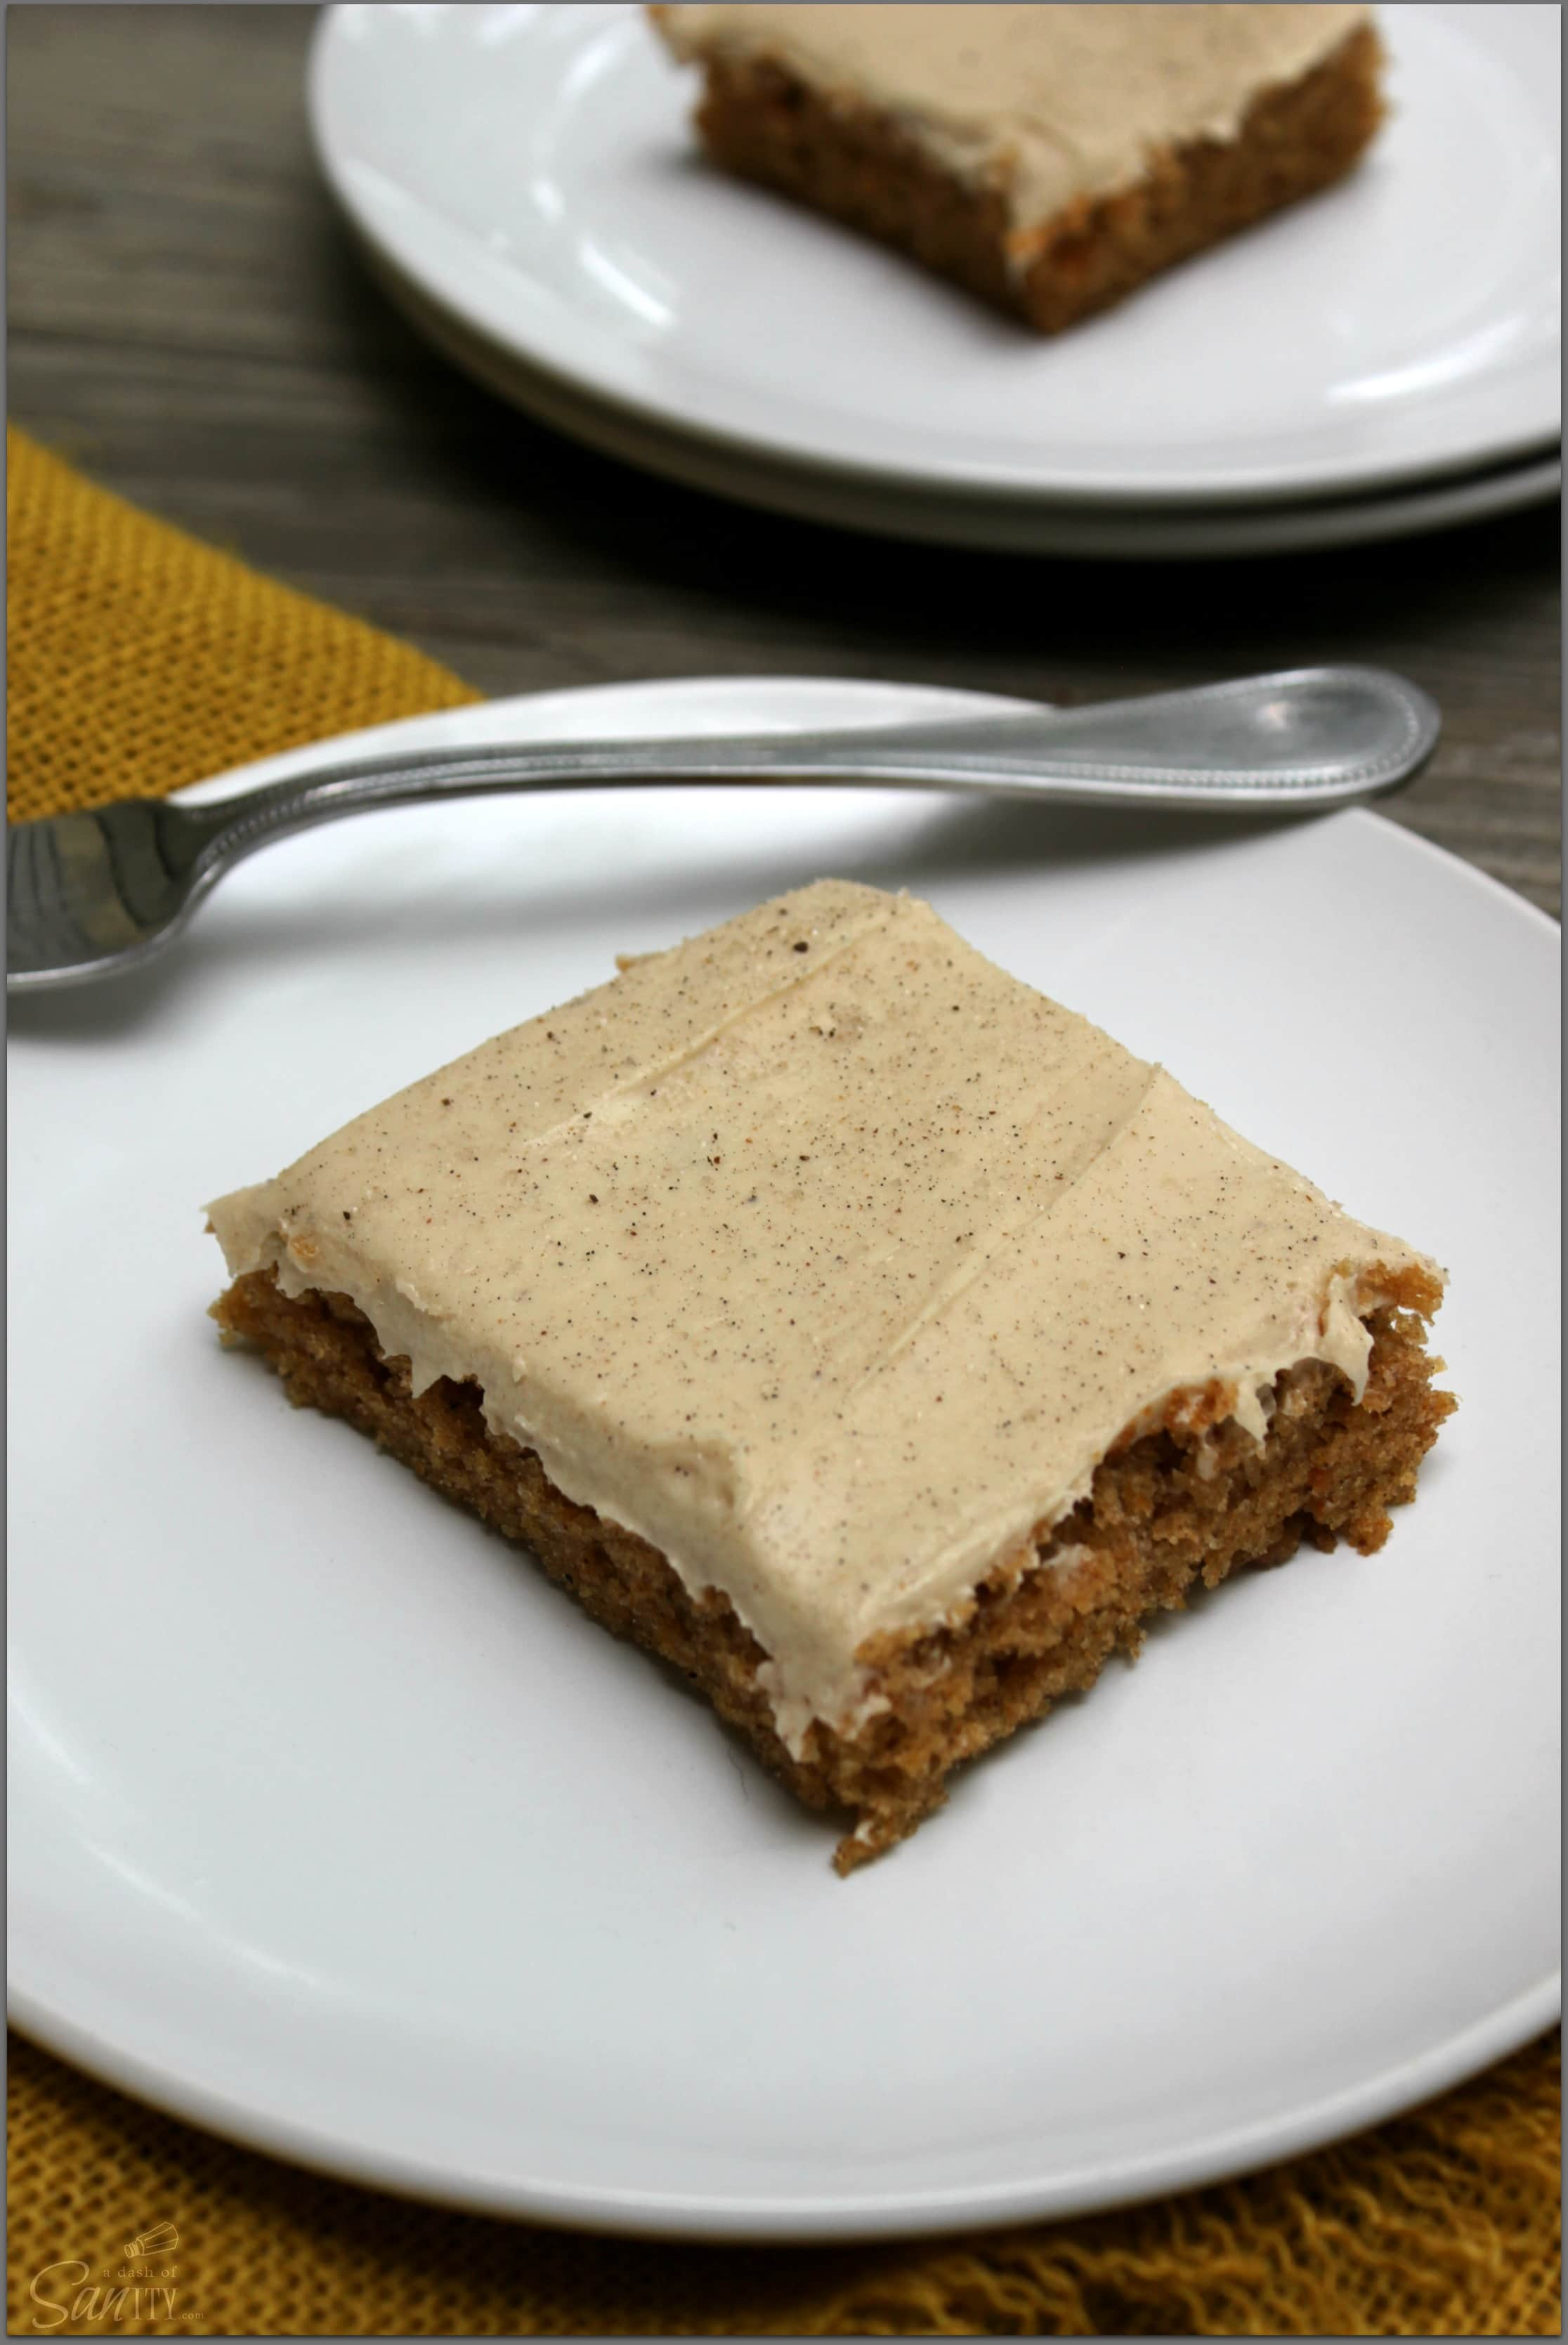 These fall inspired Maple Cinnamon Sweet Potato Bars topped with a maple cinnamon cream cheese frosting are easy to make and will please any crowd.